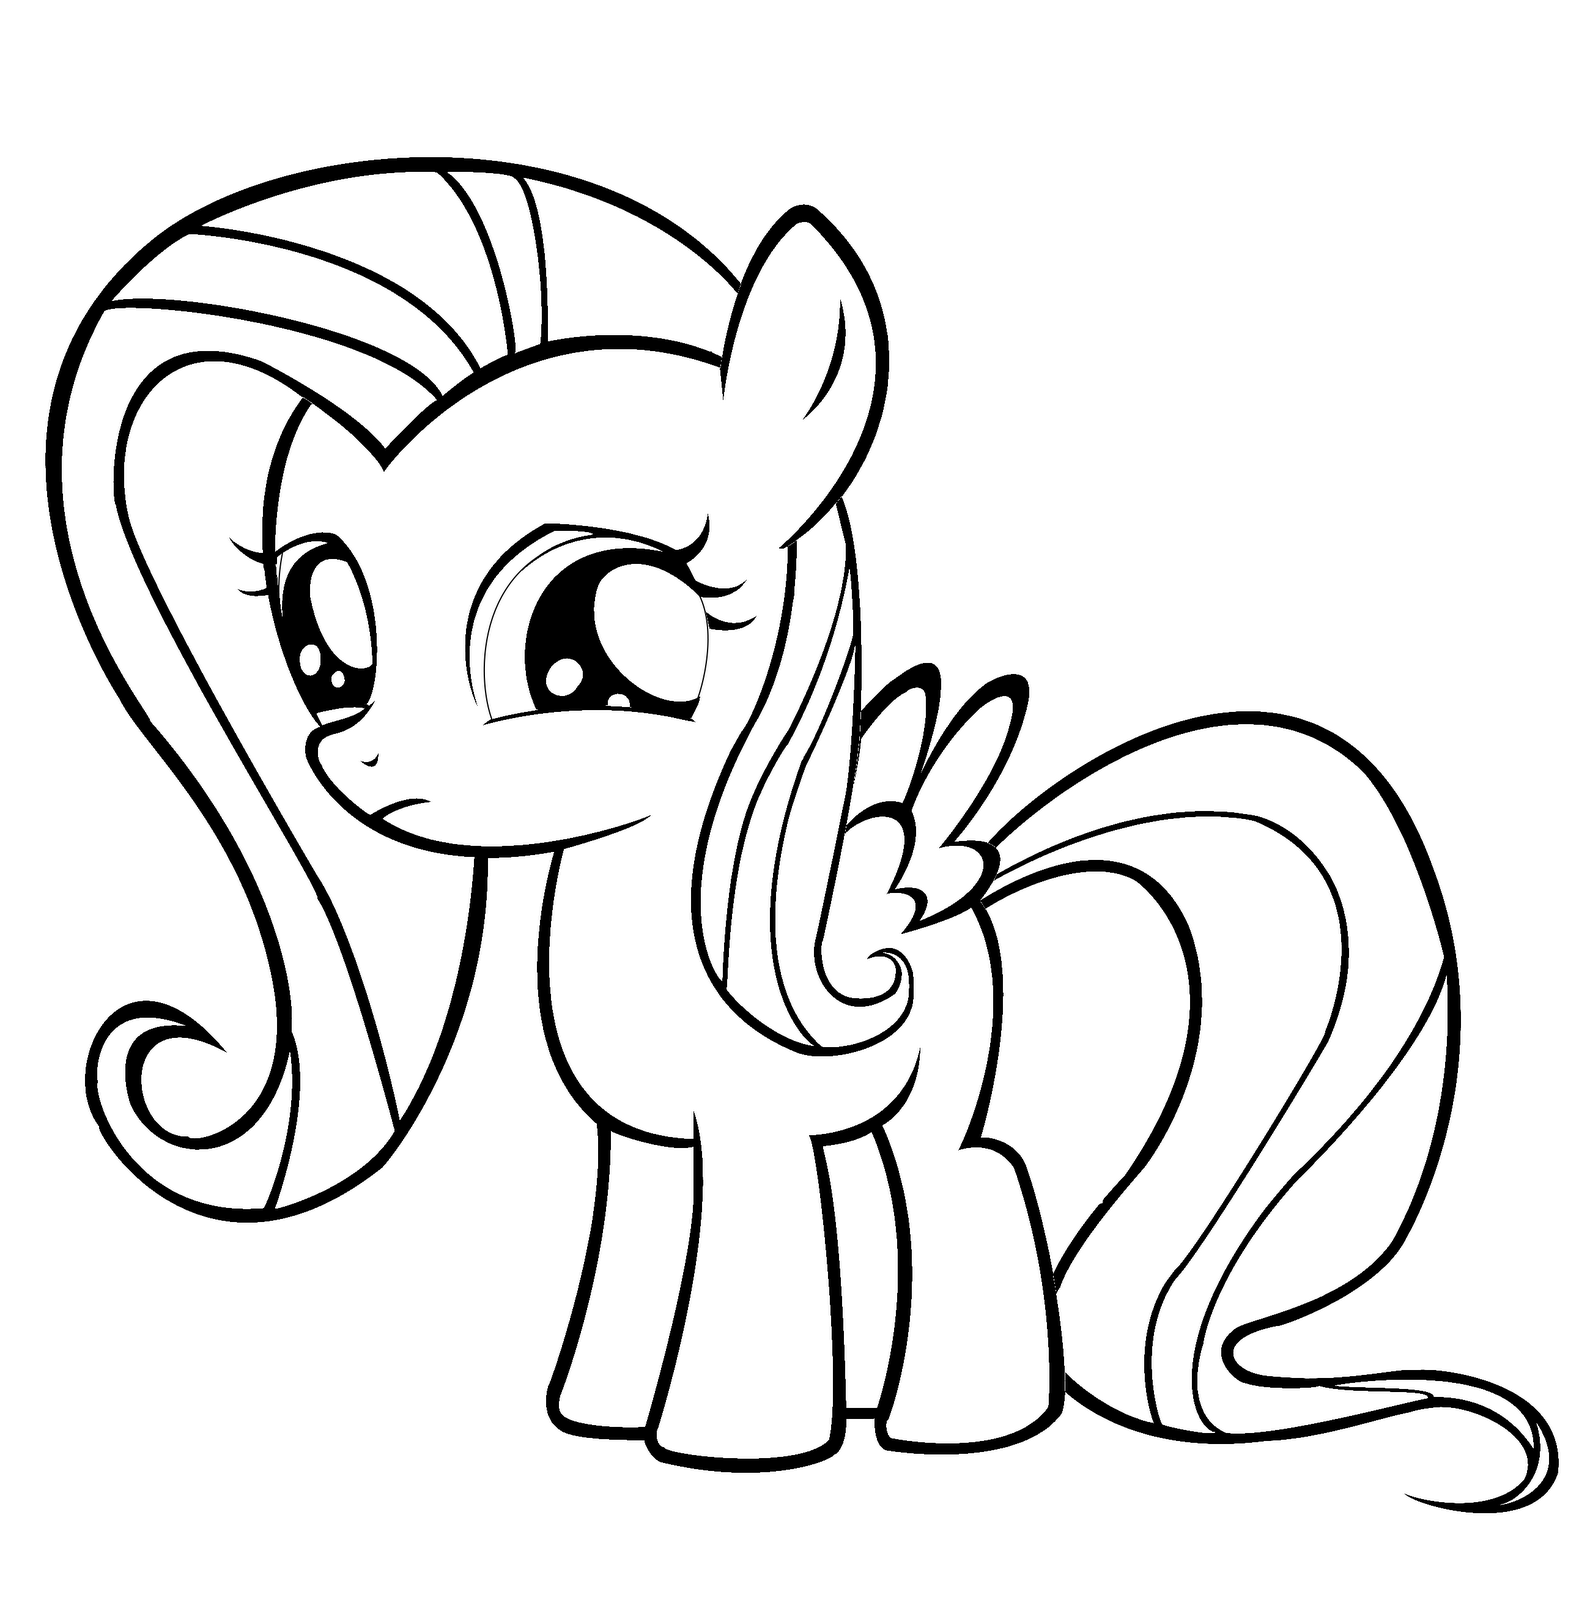 my little pony pictures to color free printable my little pony coloring pages for kids little pony pictures my color to